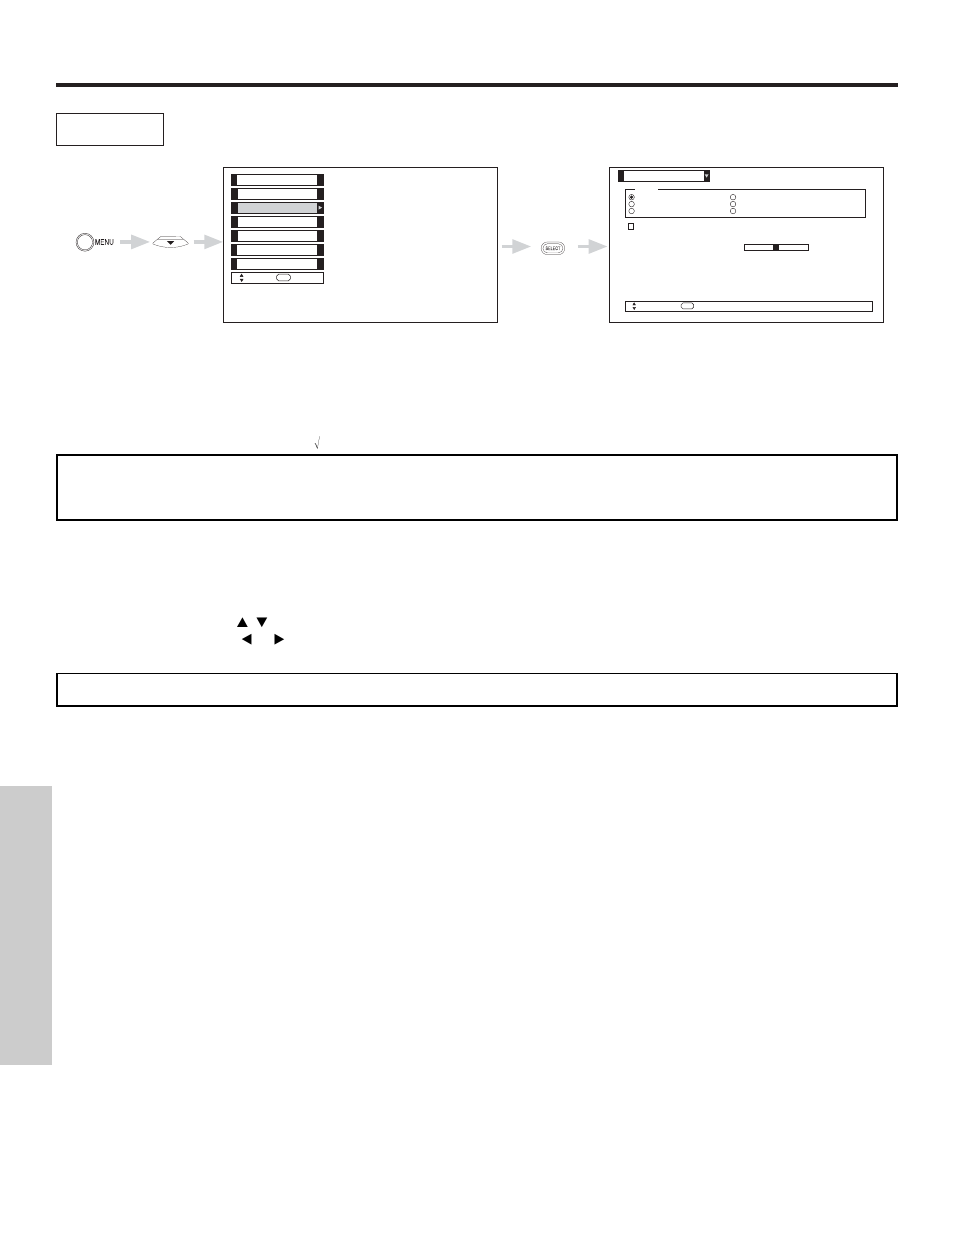 Hitachi 51f510 Manual Pdf